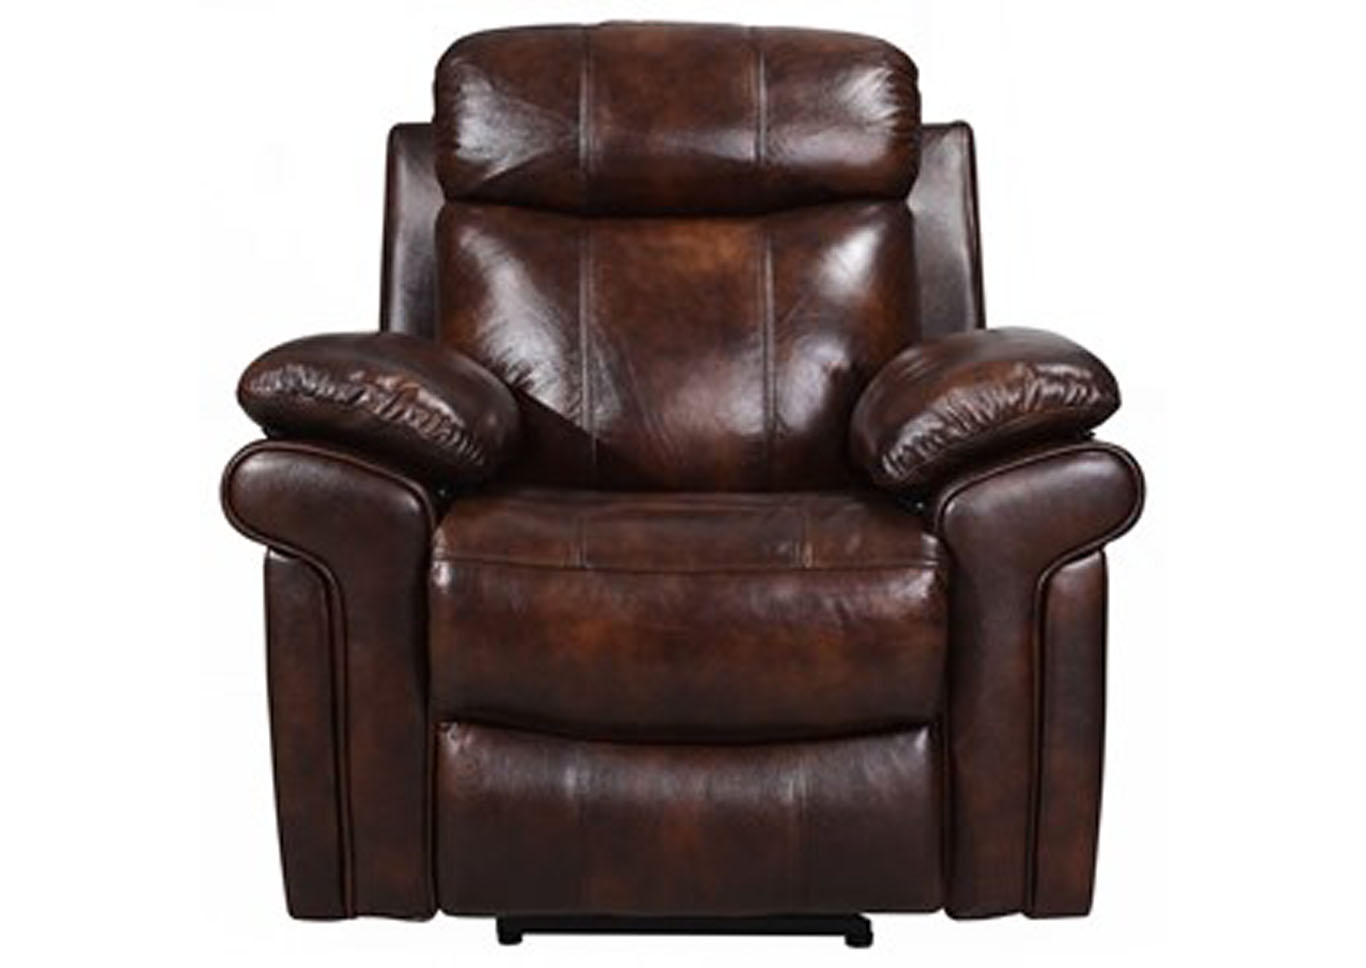 Joplin Top Grain Leather Power Recliner - Brown,Instore